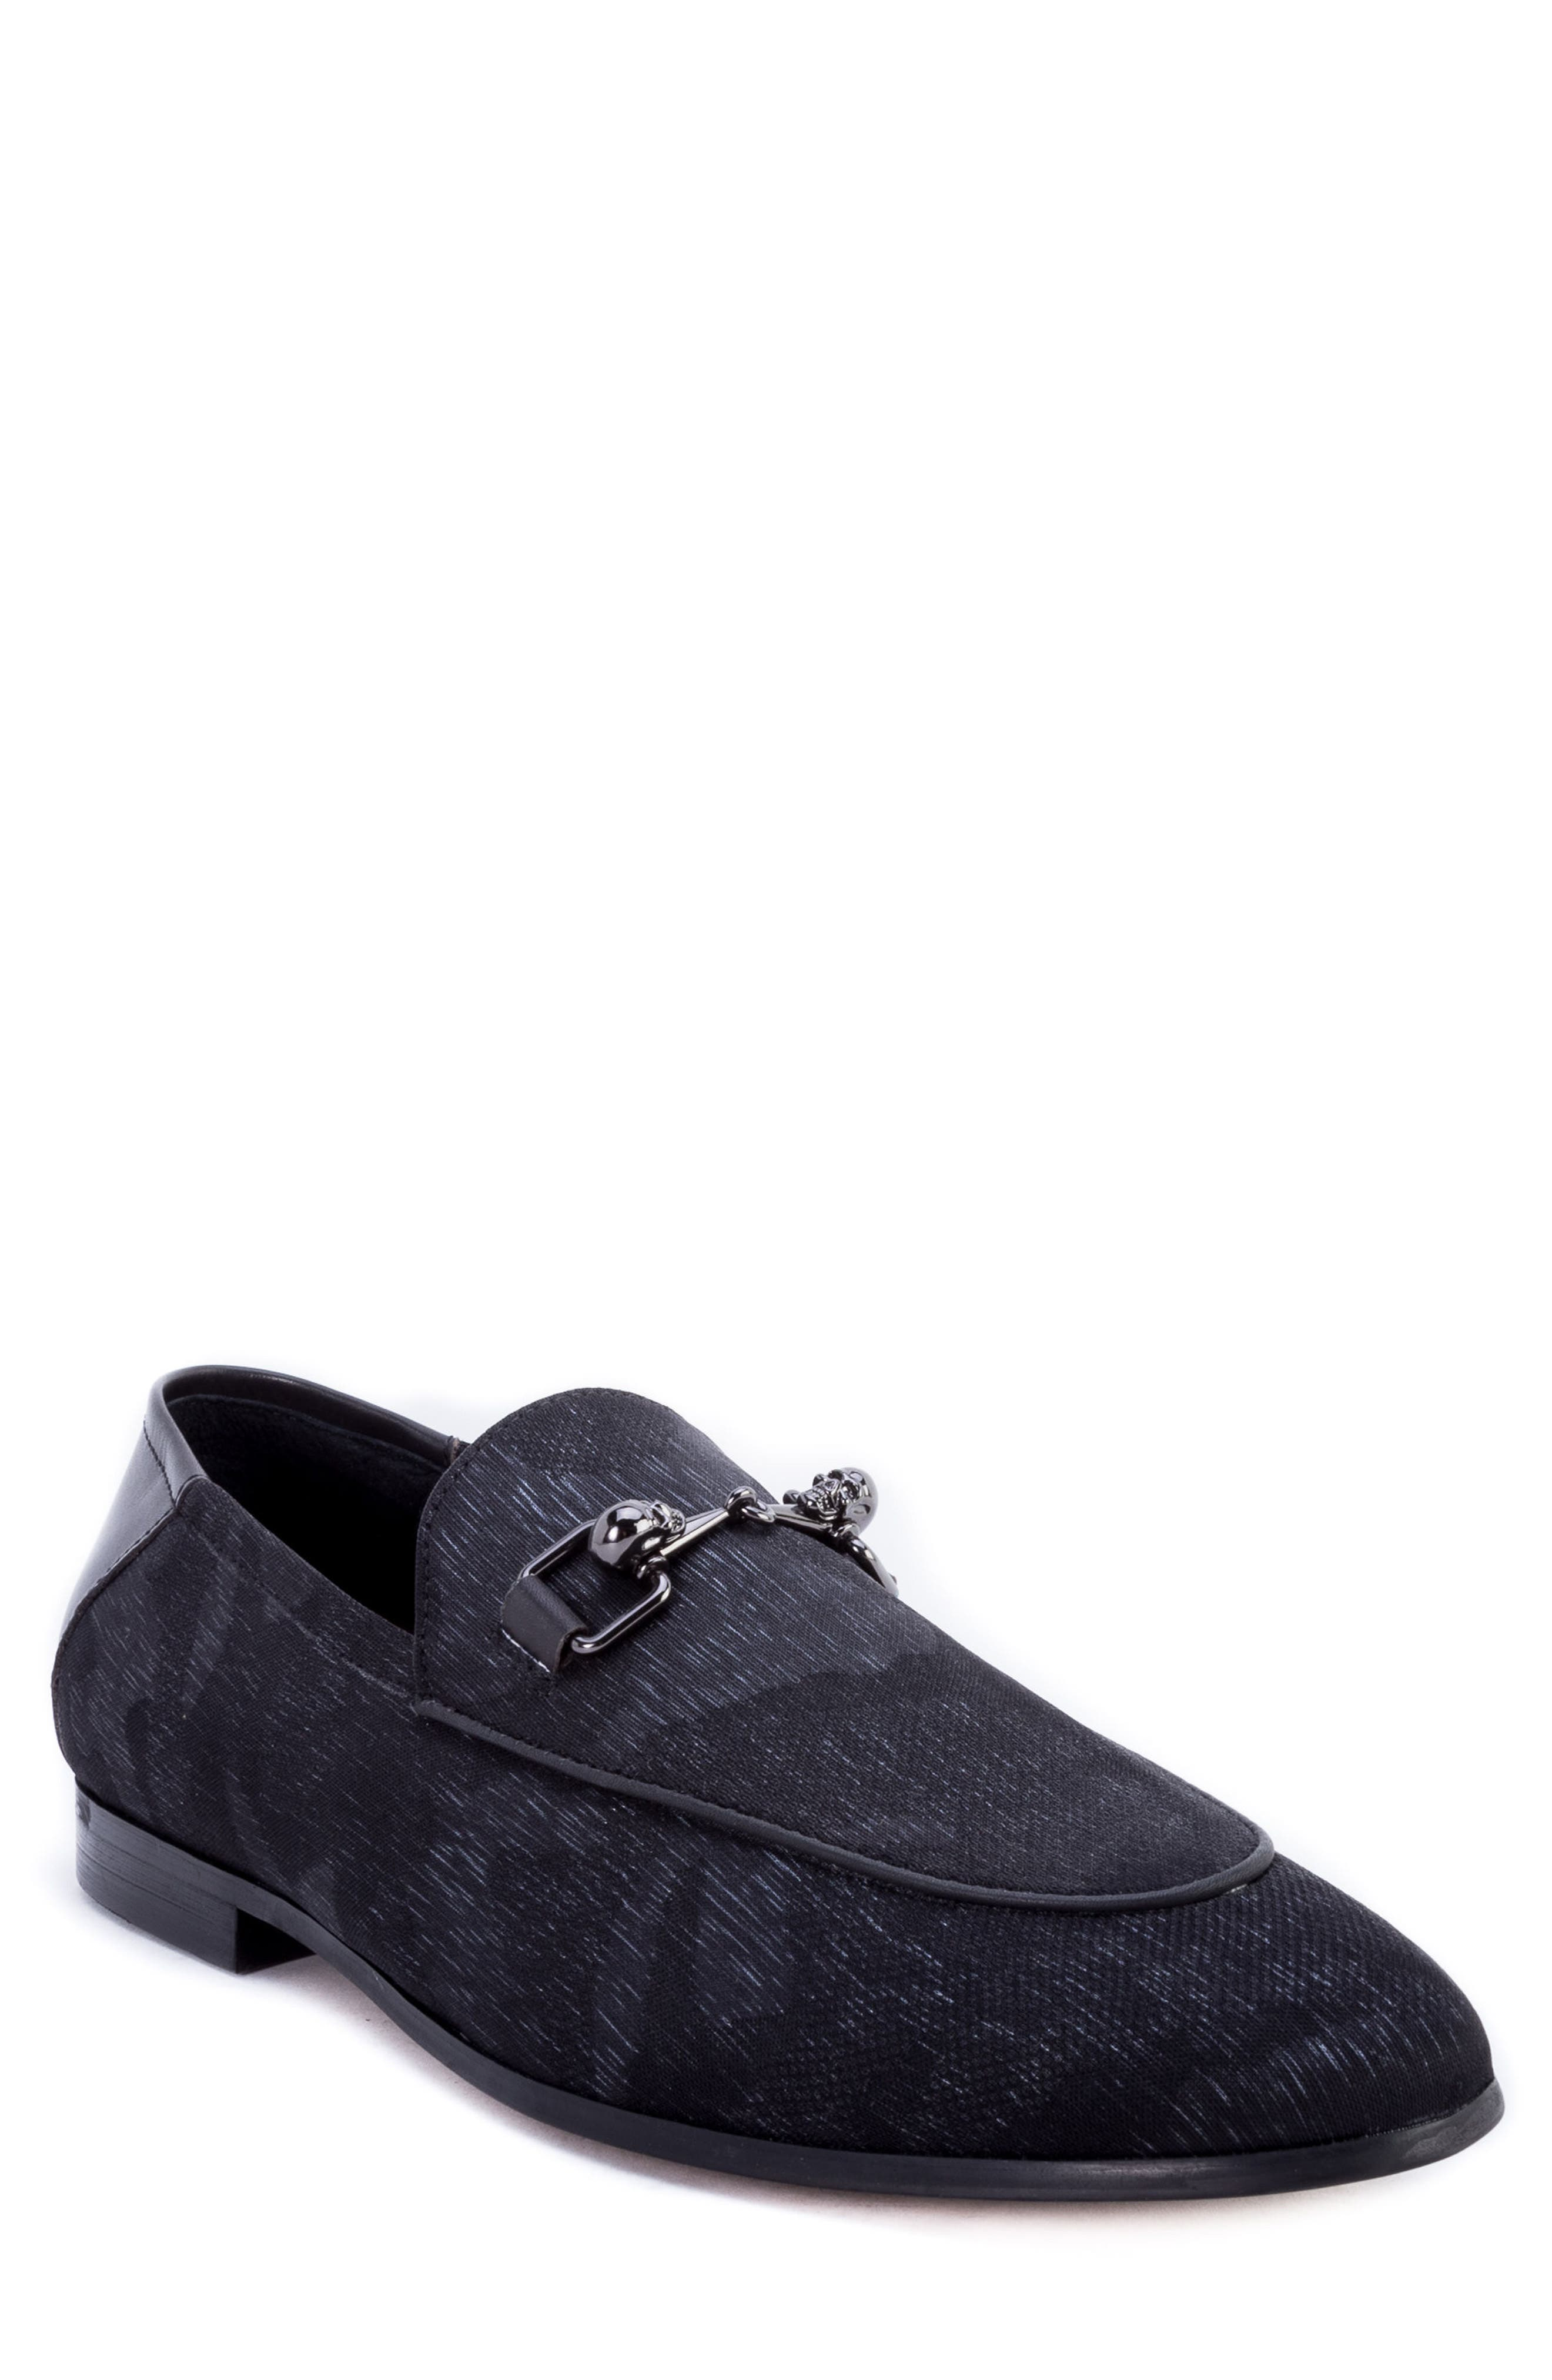 Barton Camouflage Bit Loafer,                         Main,                         color, GREY FABRIC